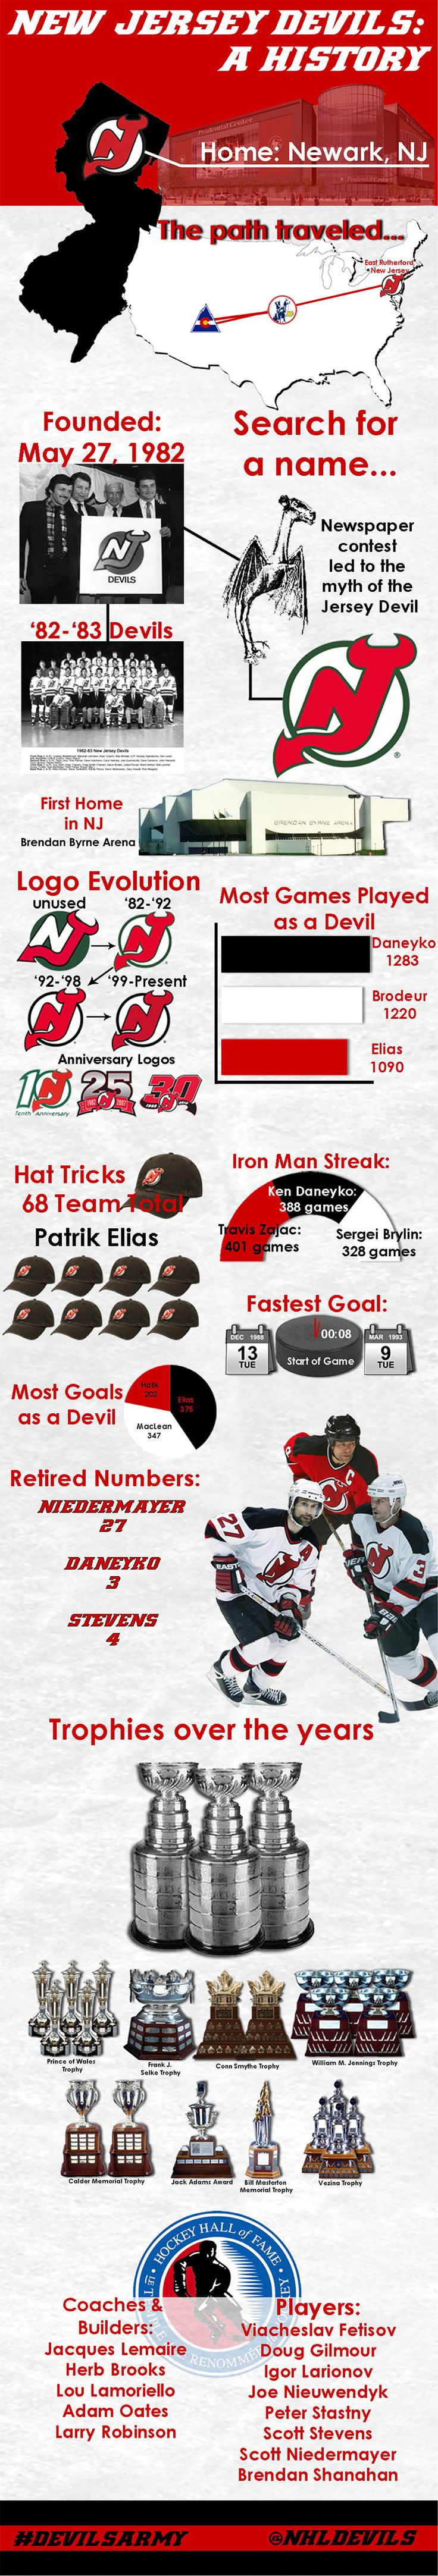 New Jersey Devils History Infographic - New Jersey Devils - Fan Zone